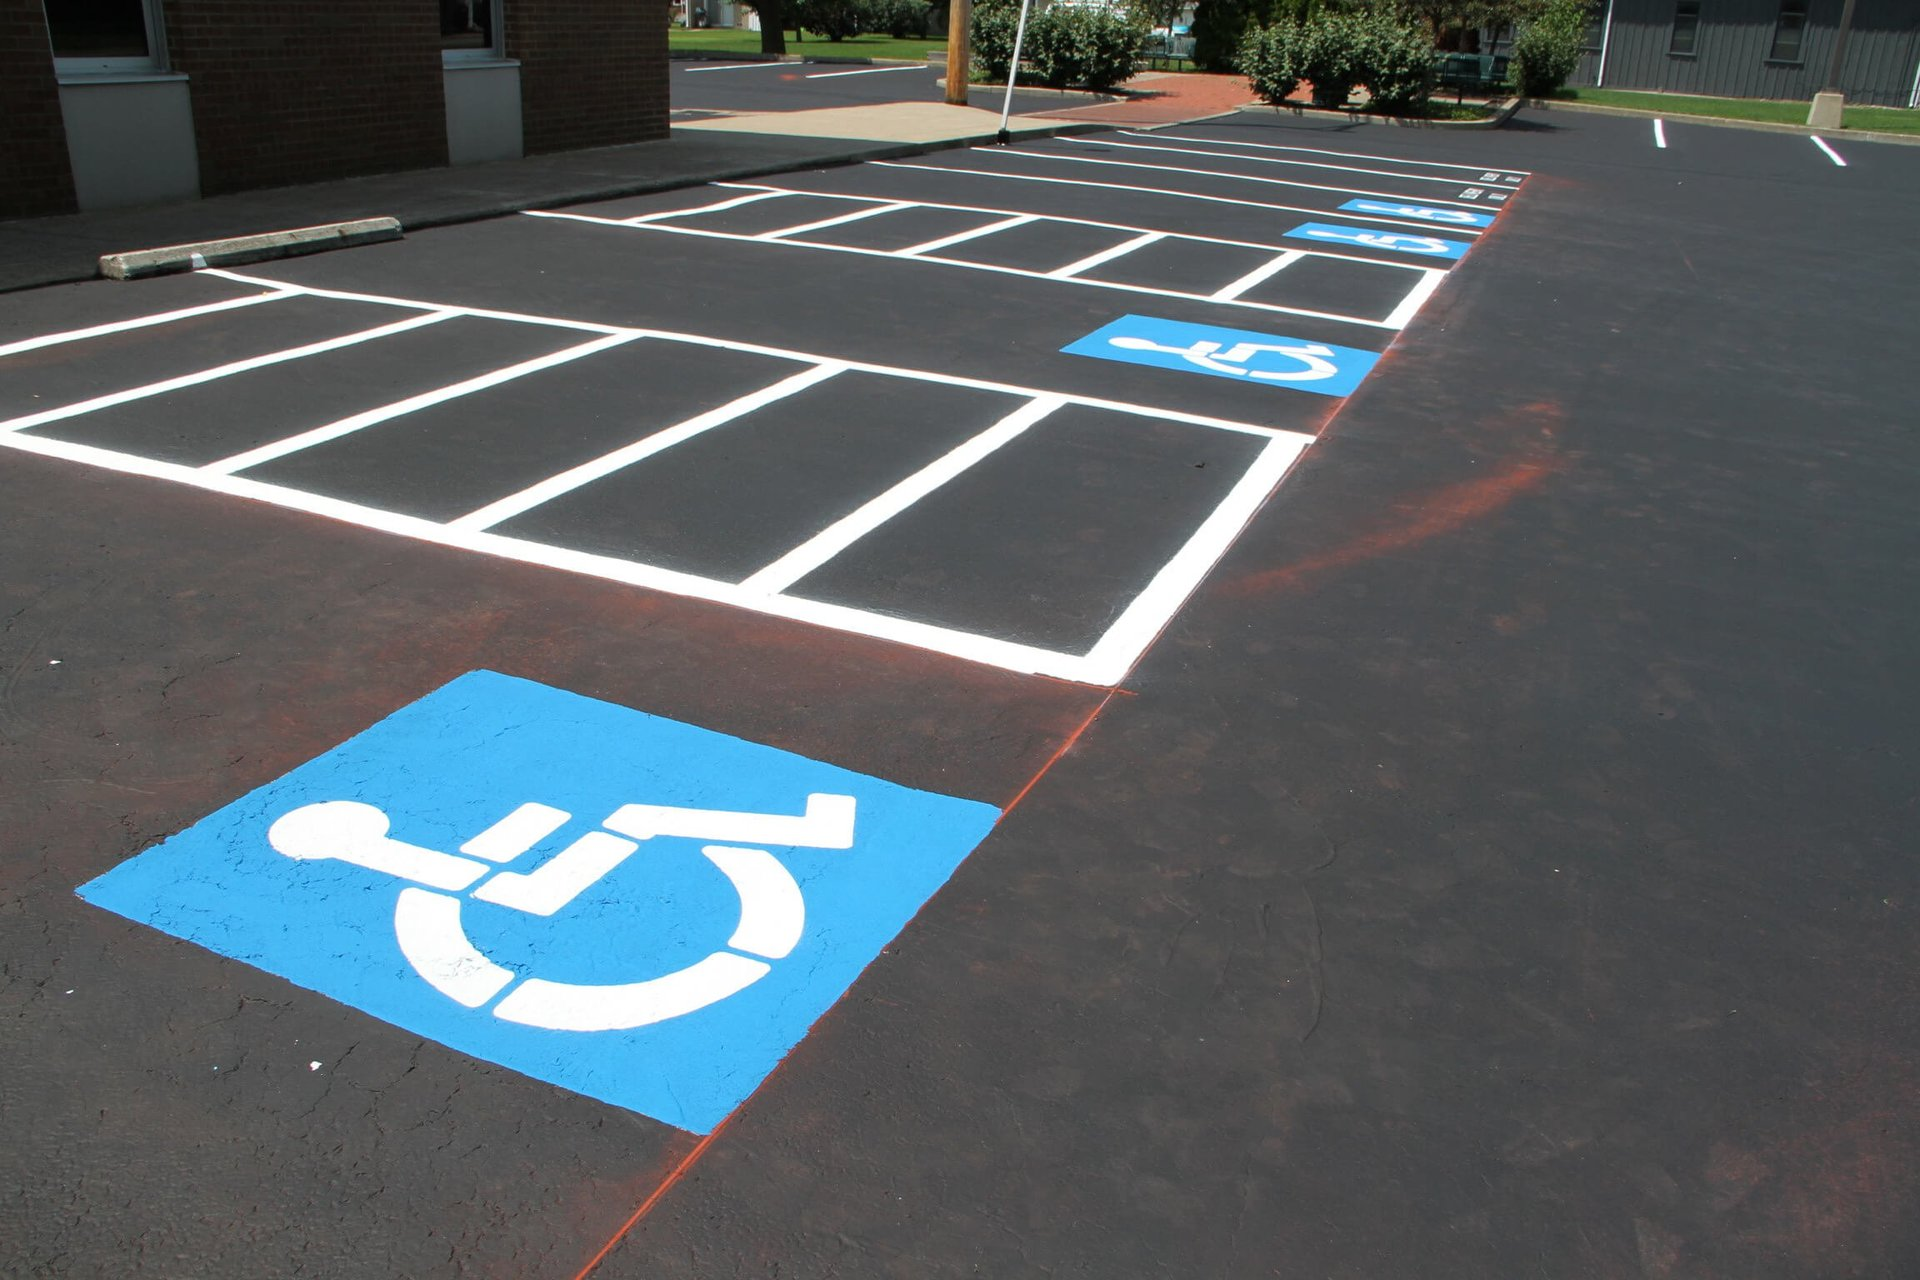 A finished parking lot striping job with handicap spaces and no parking zones performed by Dublin CPS, Inc. in Ohio